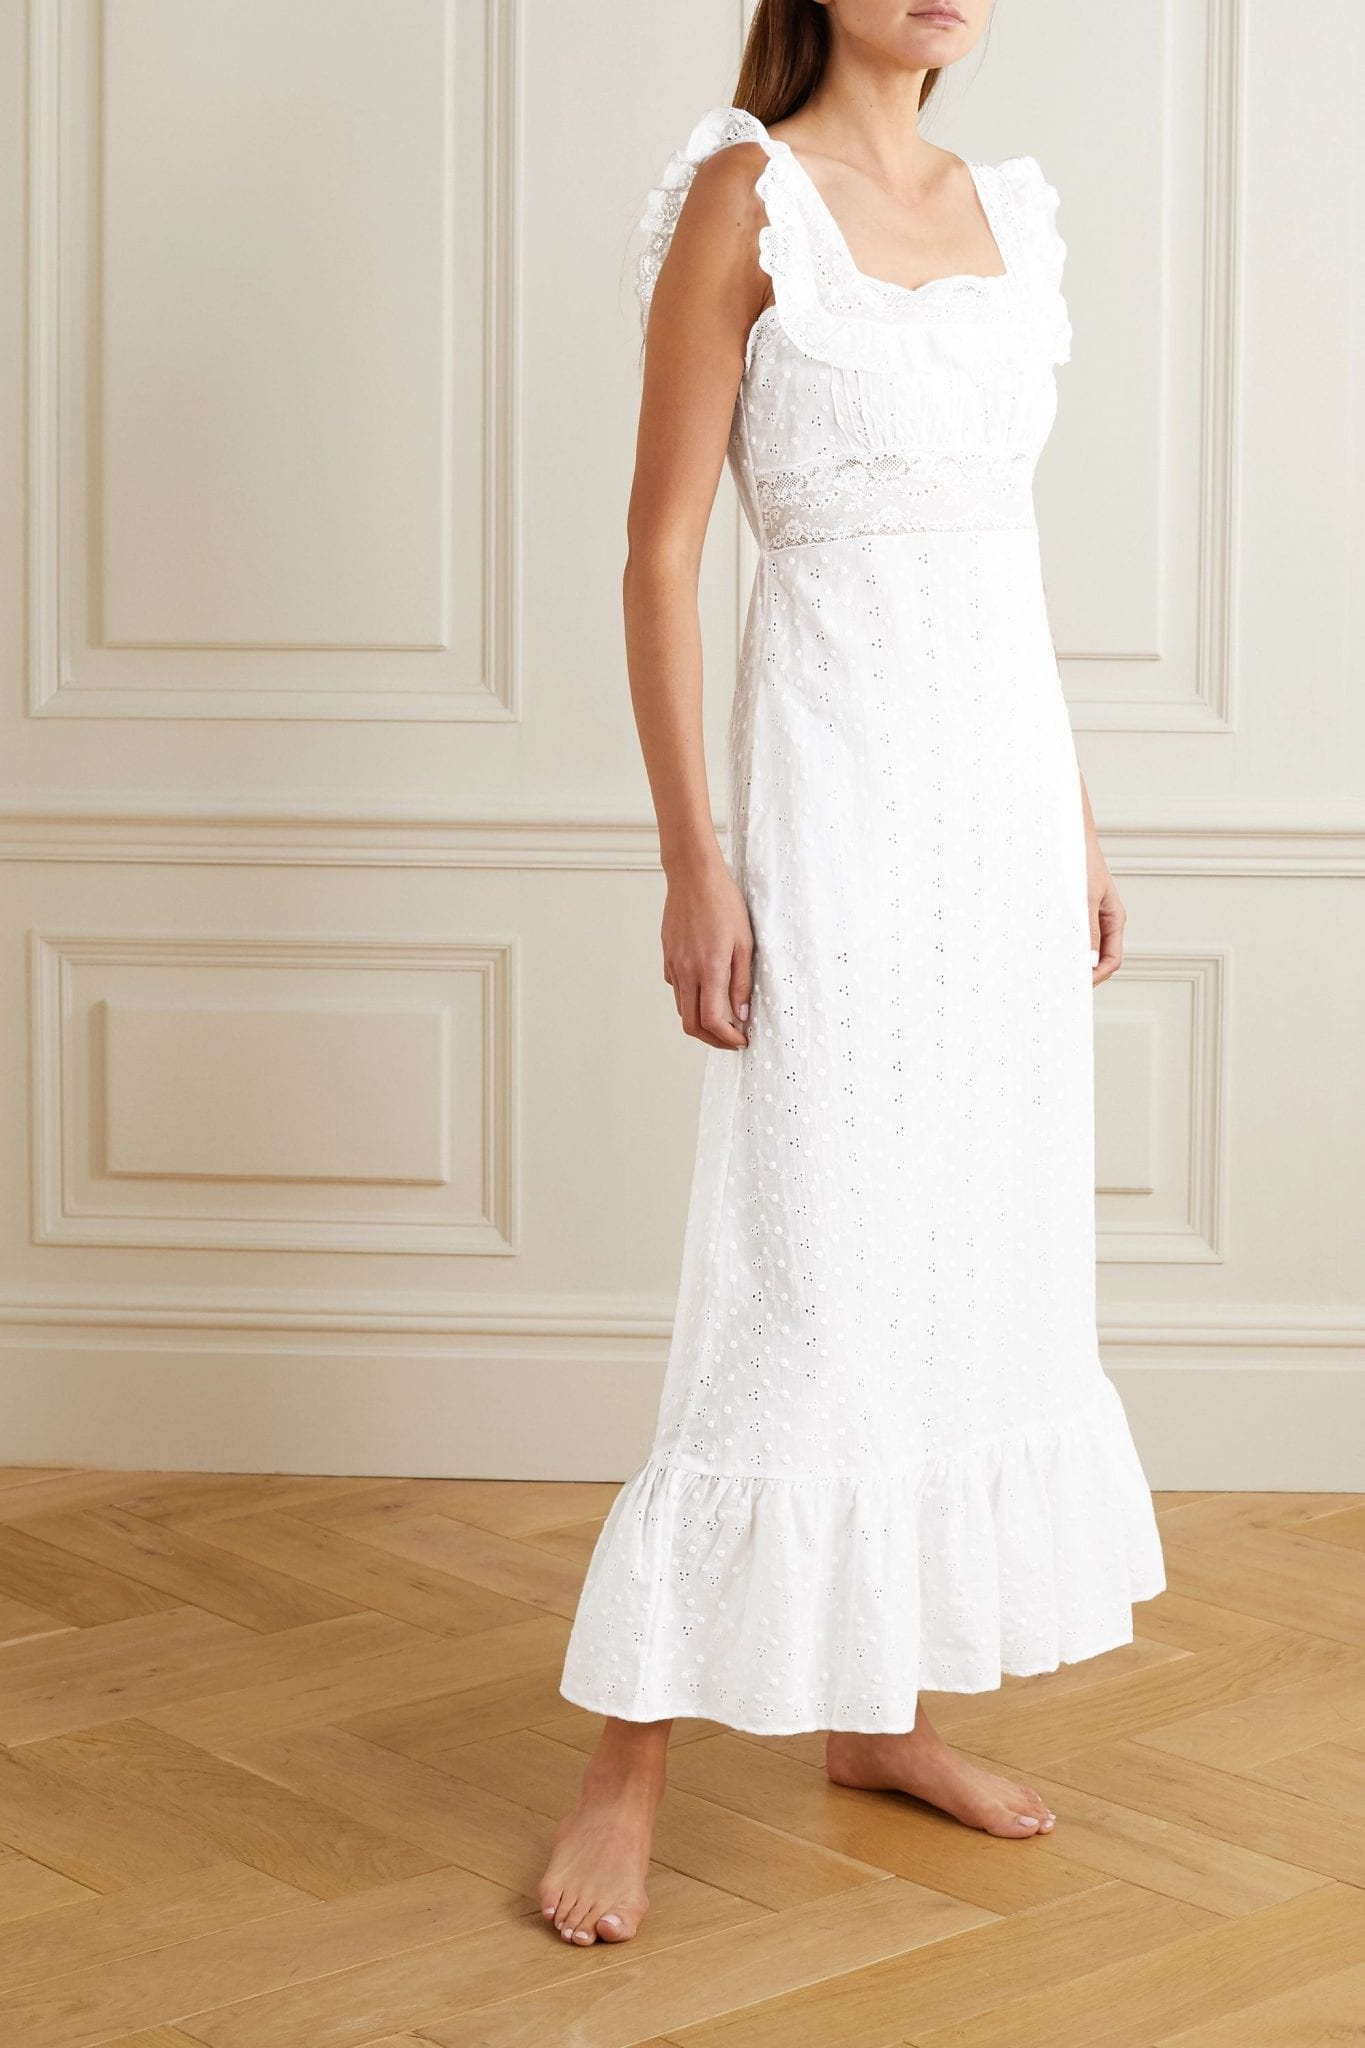 LORETTA CAPONI Margherita Lace-trimmed Broderie Anglaise Cotton-voile Night Dress